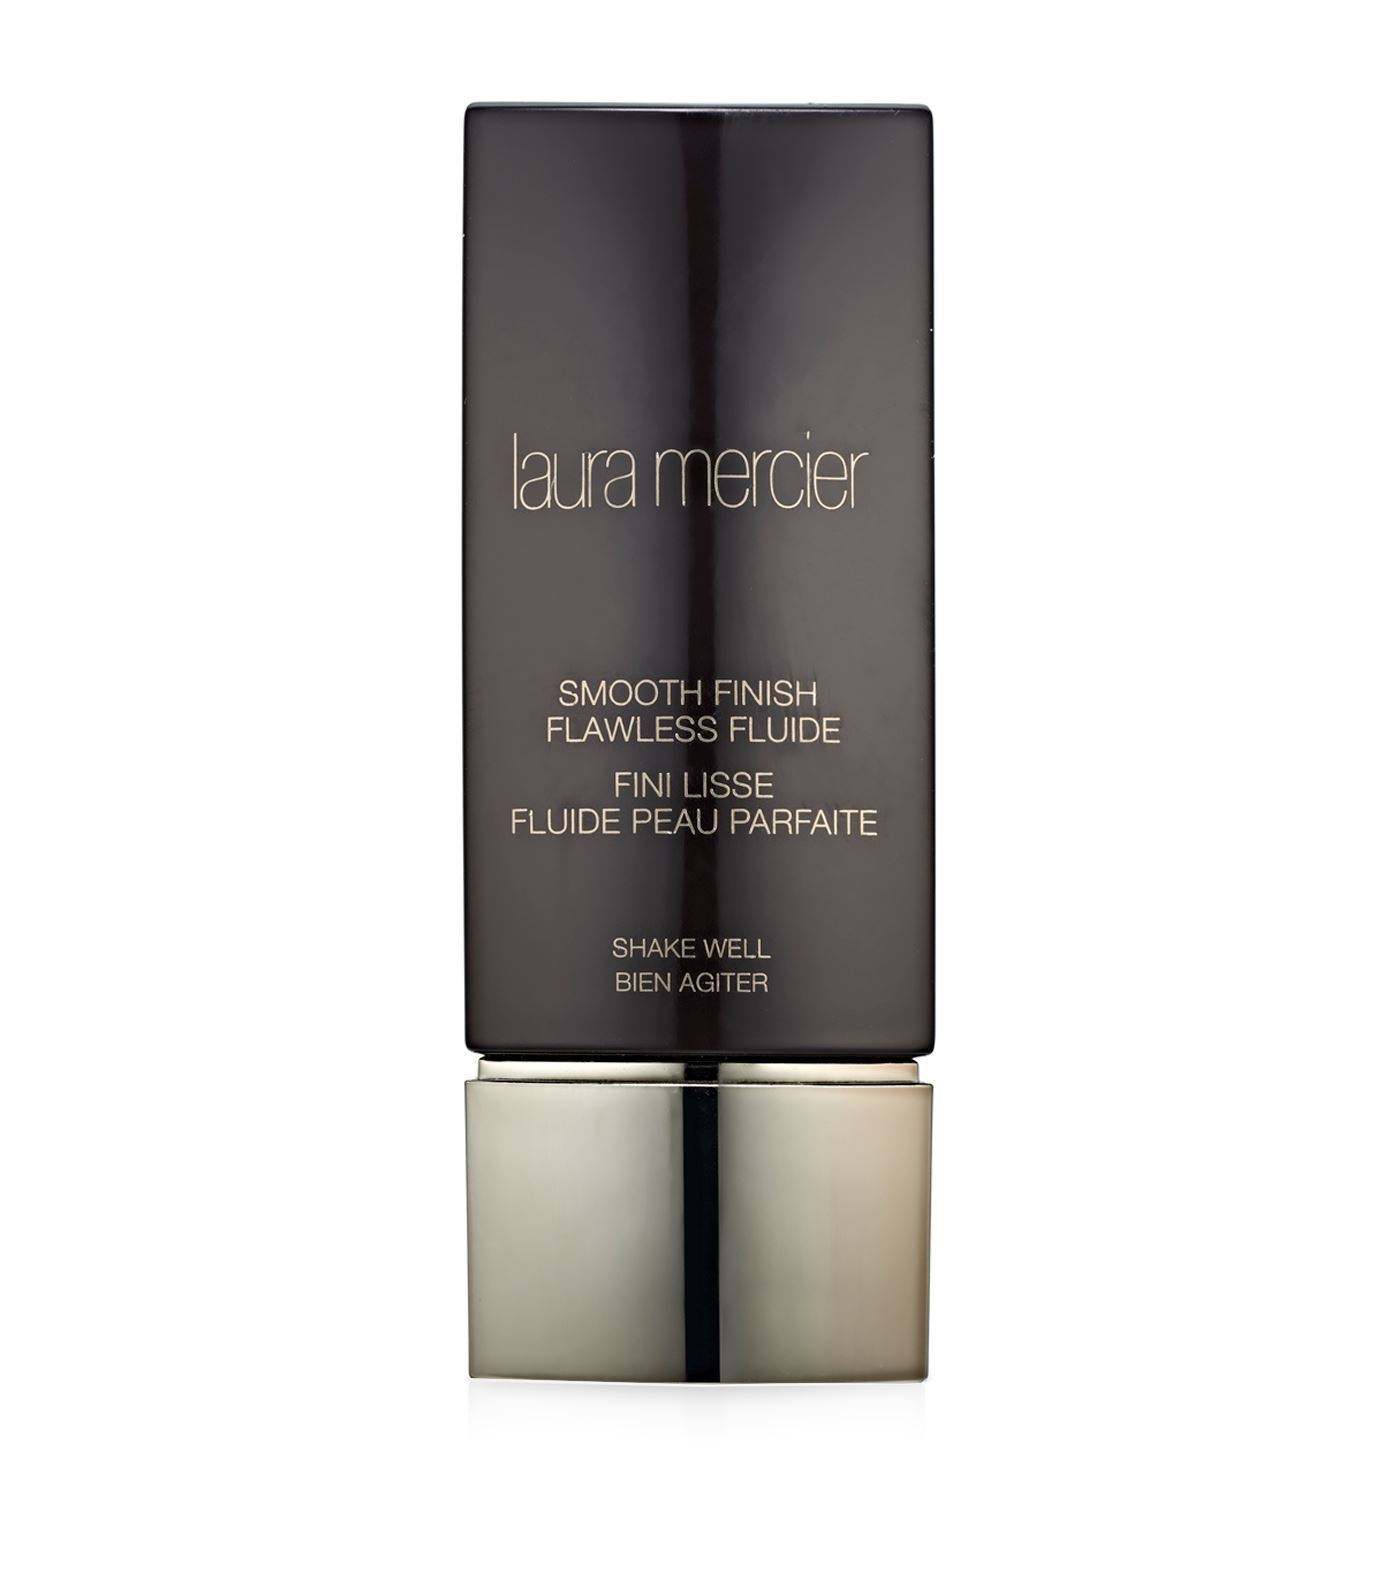 Laura Mercier Smooth Finish Flawless Fluide Size: 30ml/1oz  Color:  Butterscotch - $27.90